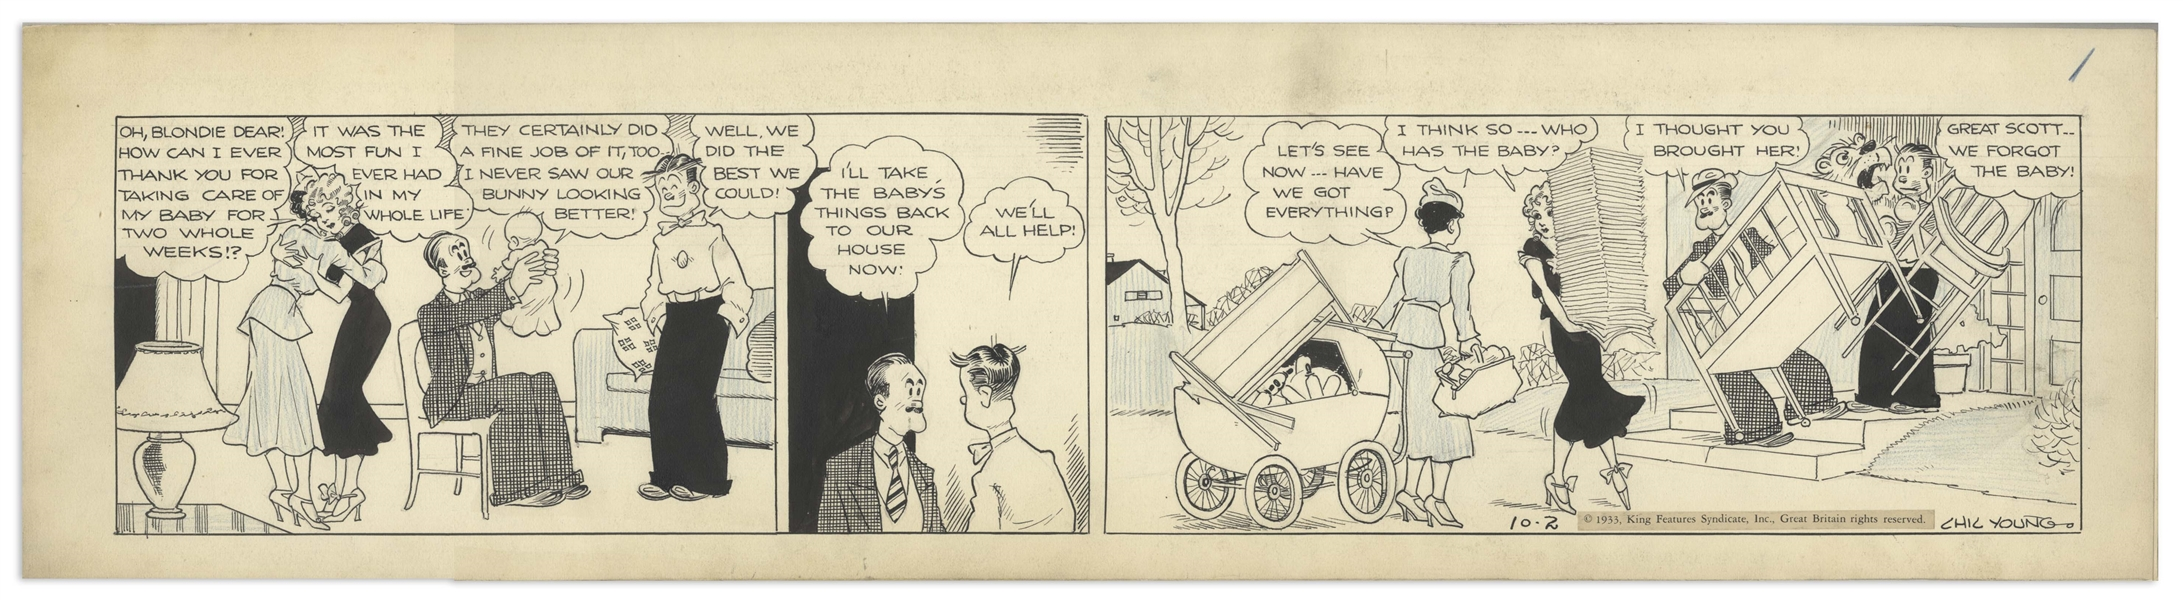 Chic Young Hand-Drawn ''Blondie'' Comic Strip From 1933 Titled ''Just a Minor Detail'' -- The Woodley's Have a Baby